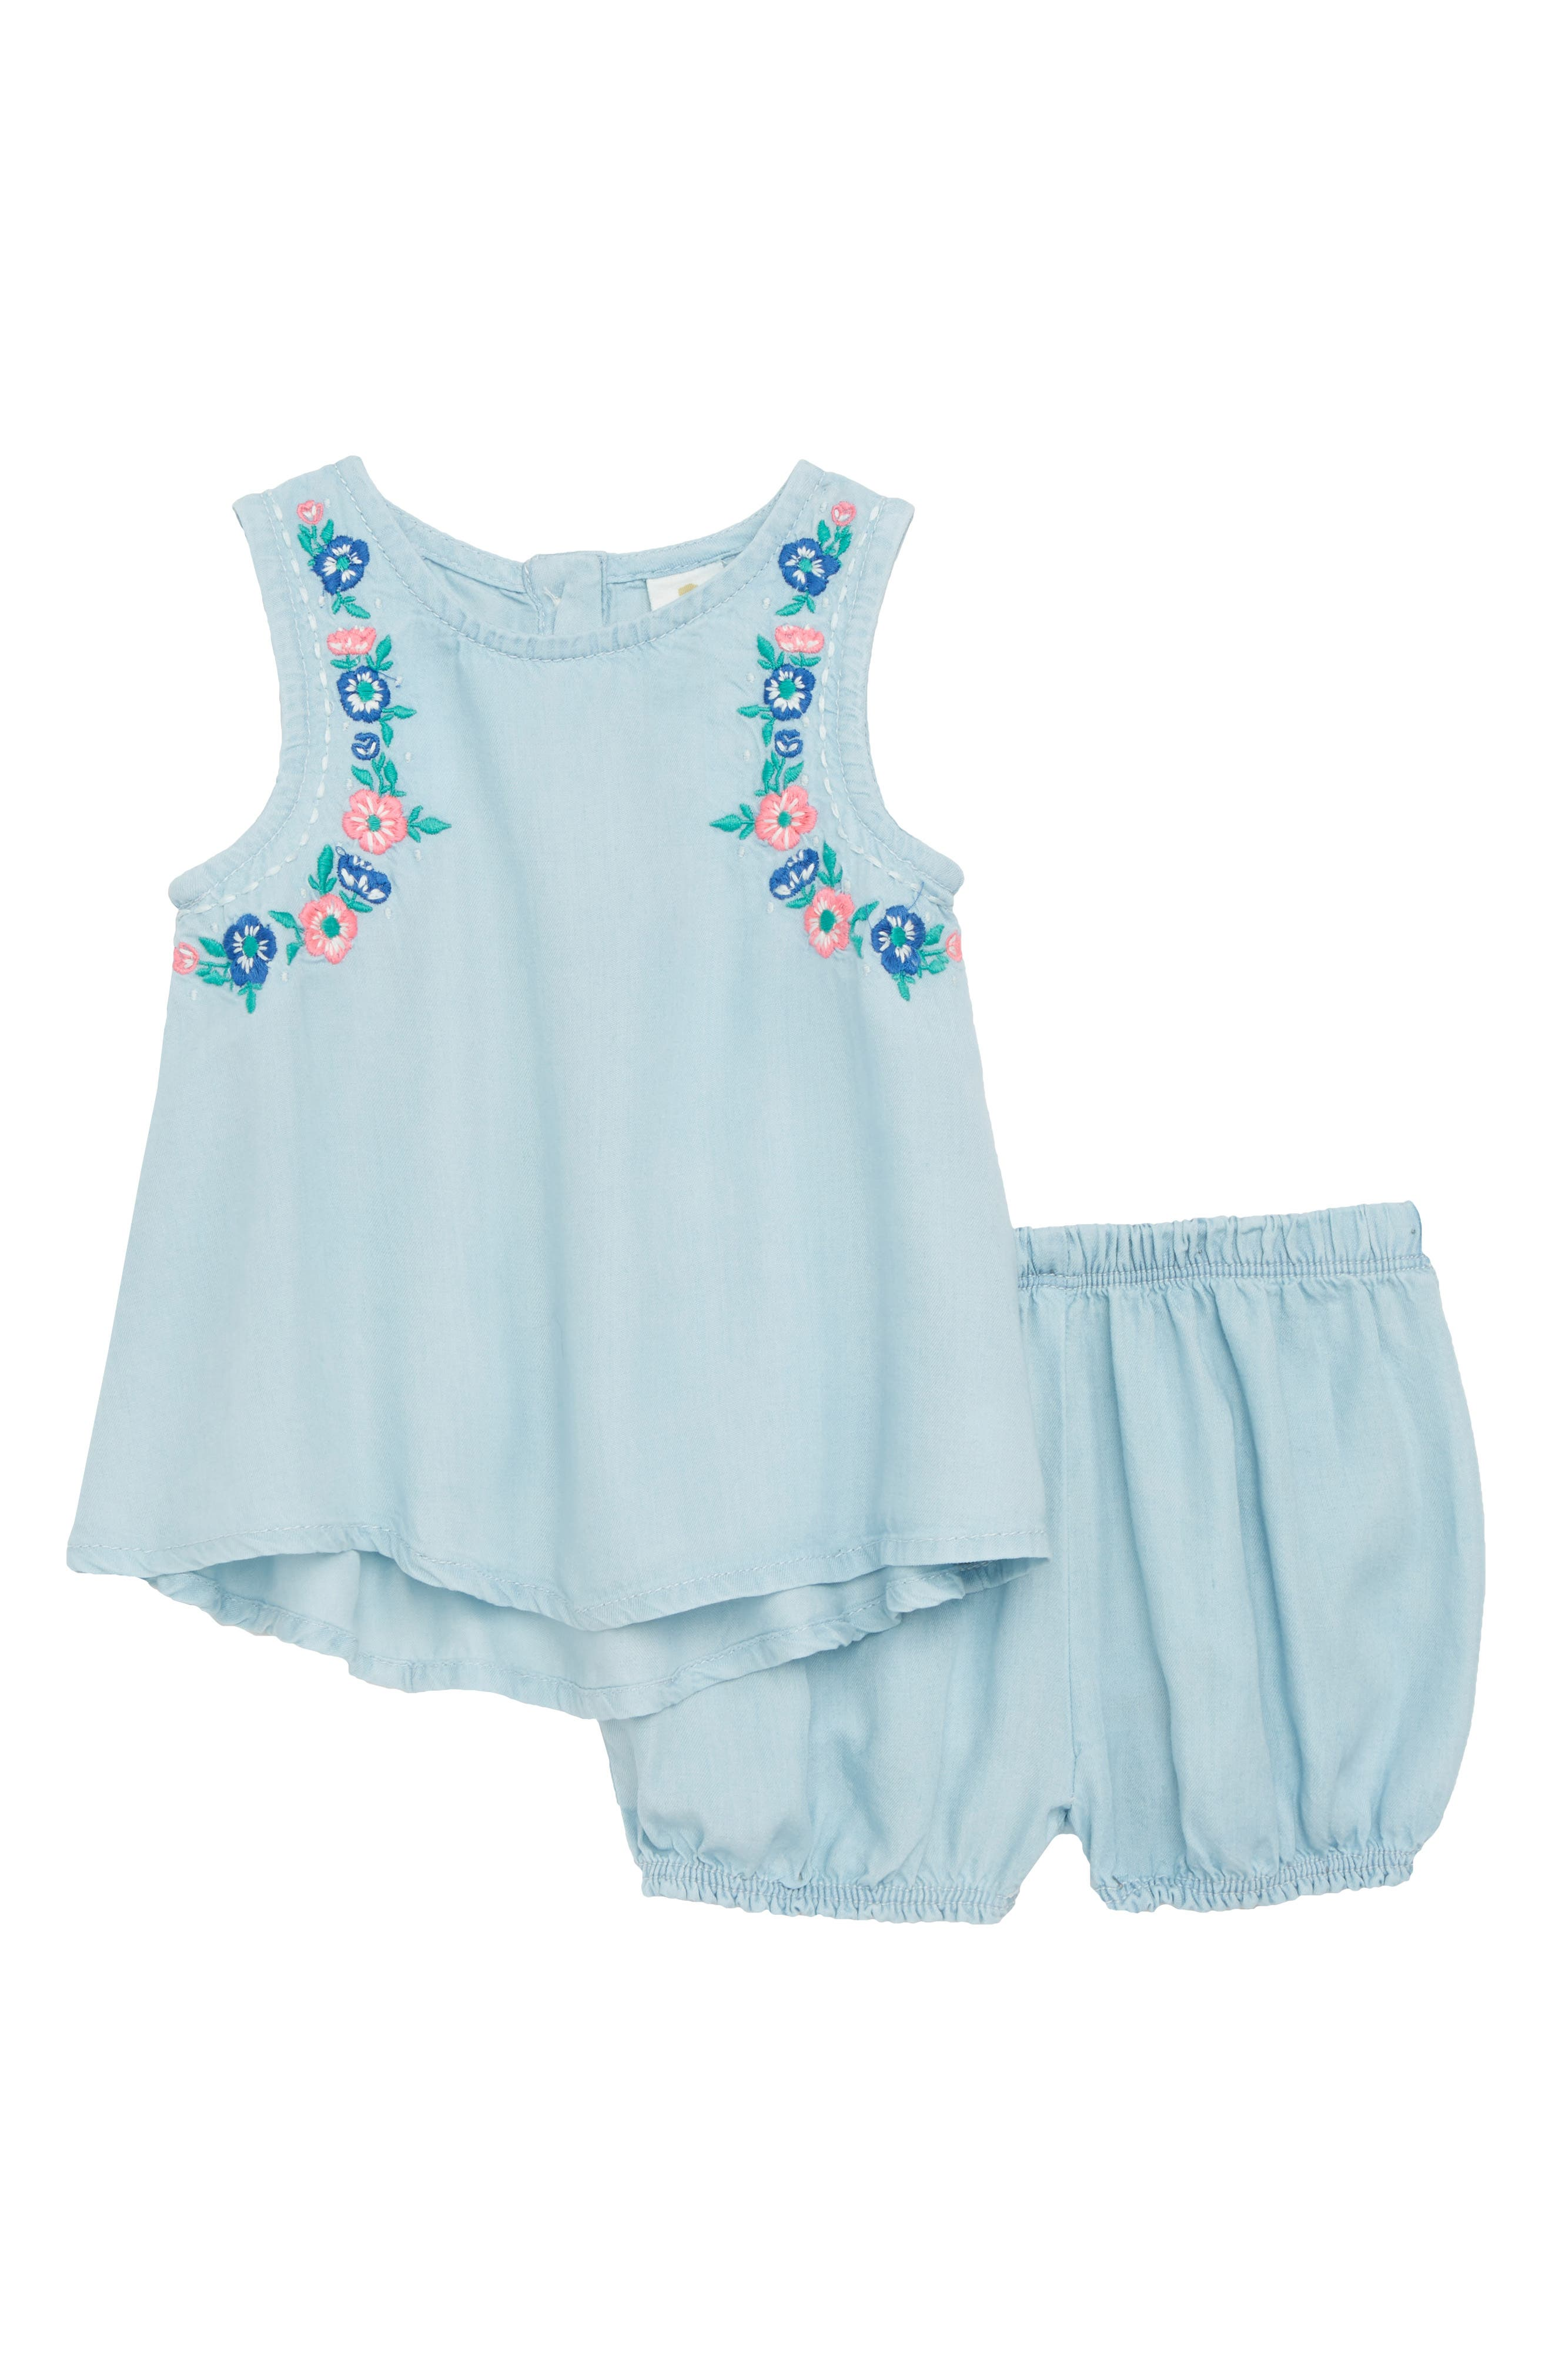 Tucker + Tate Embroidered Swing Top & Bloomers (Baby)